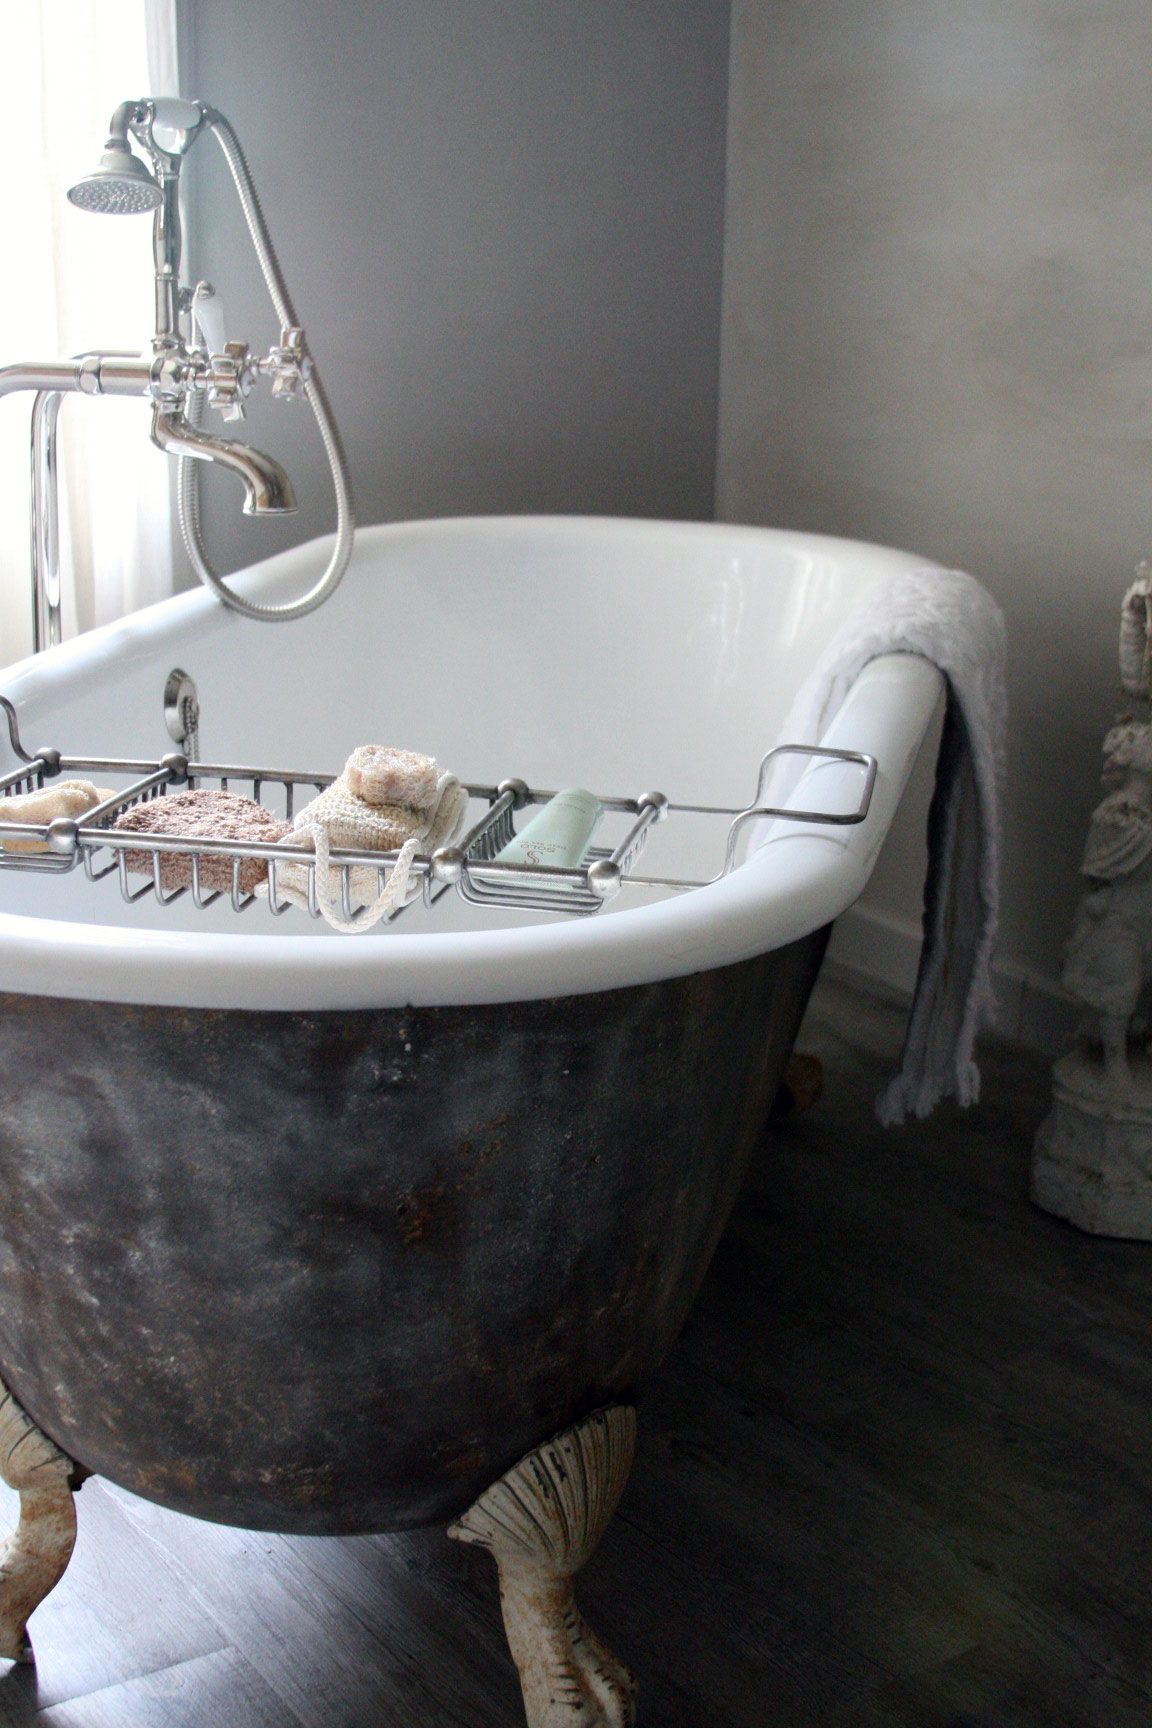 Blame it on the Clawfoot Bathtub | Clawfoot bathtub, Bathtubs and Tubs